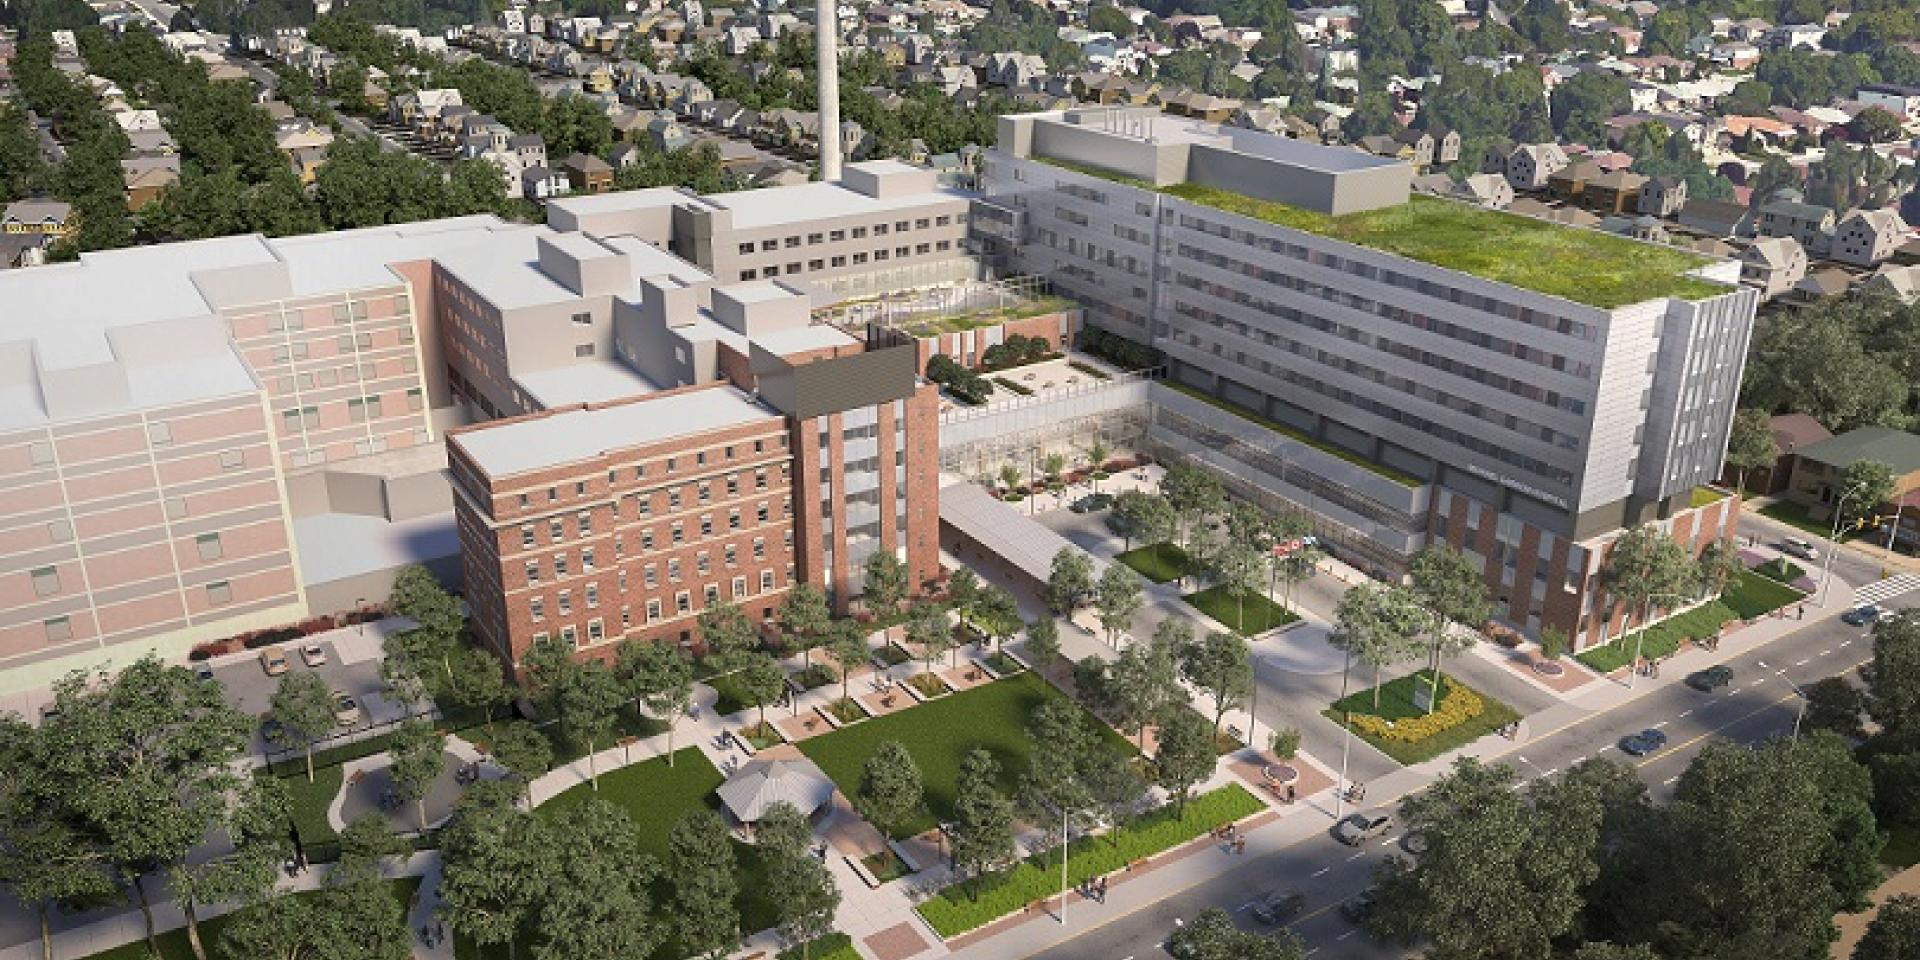 Architect's rendering of the new Michael Garron Hospital campus